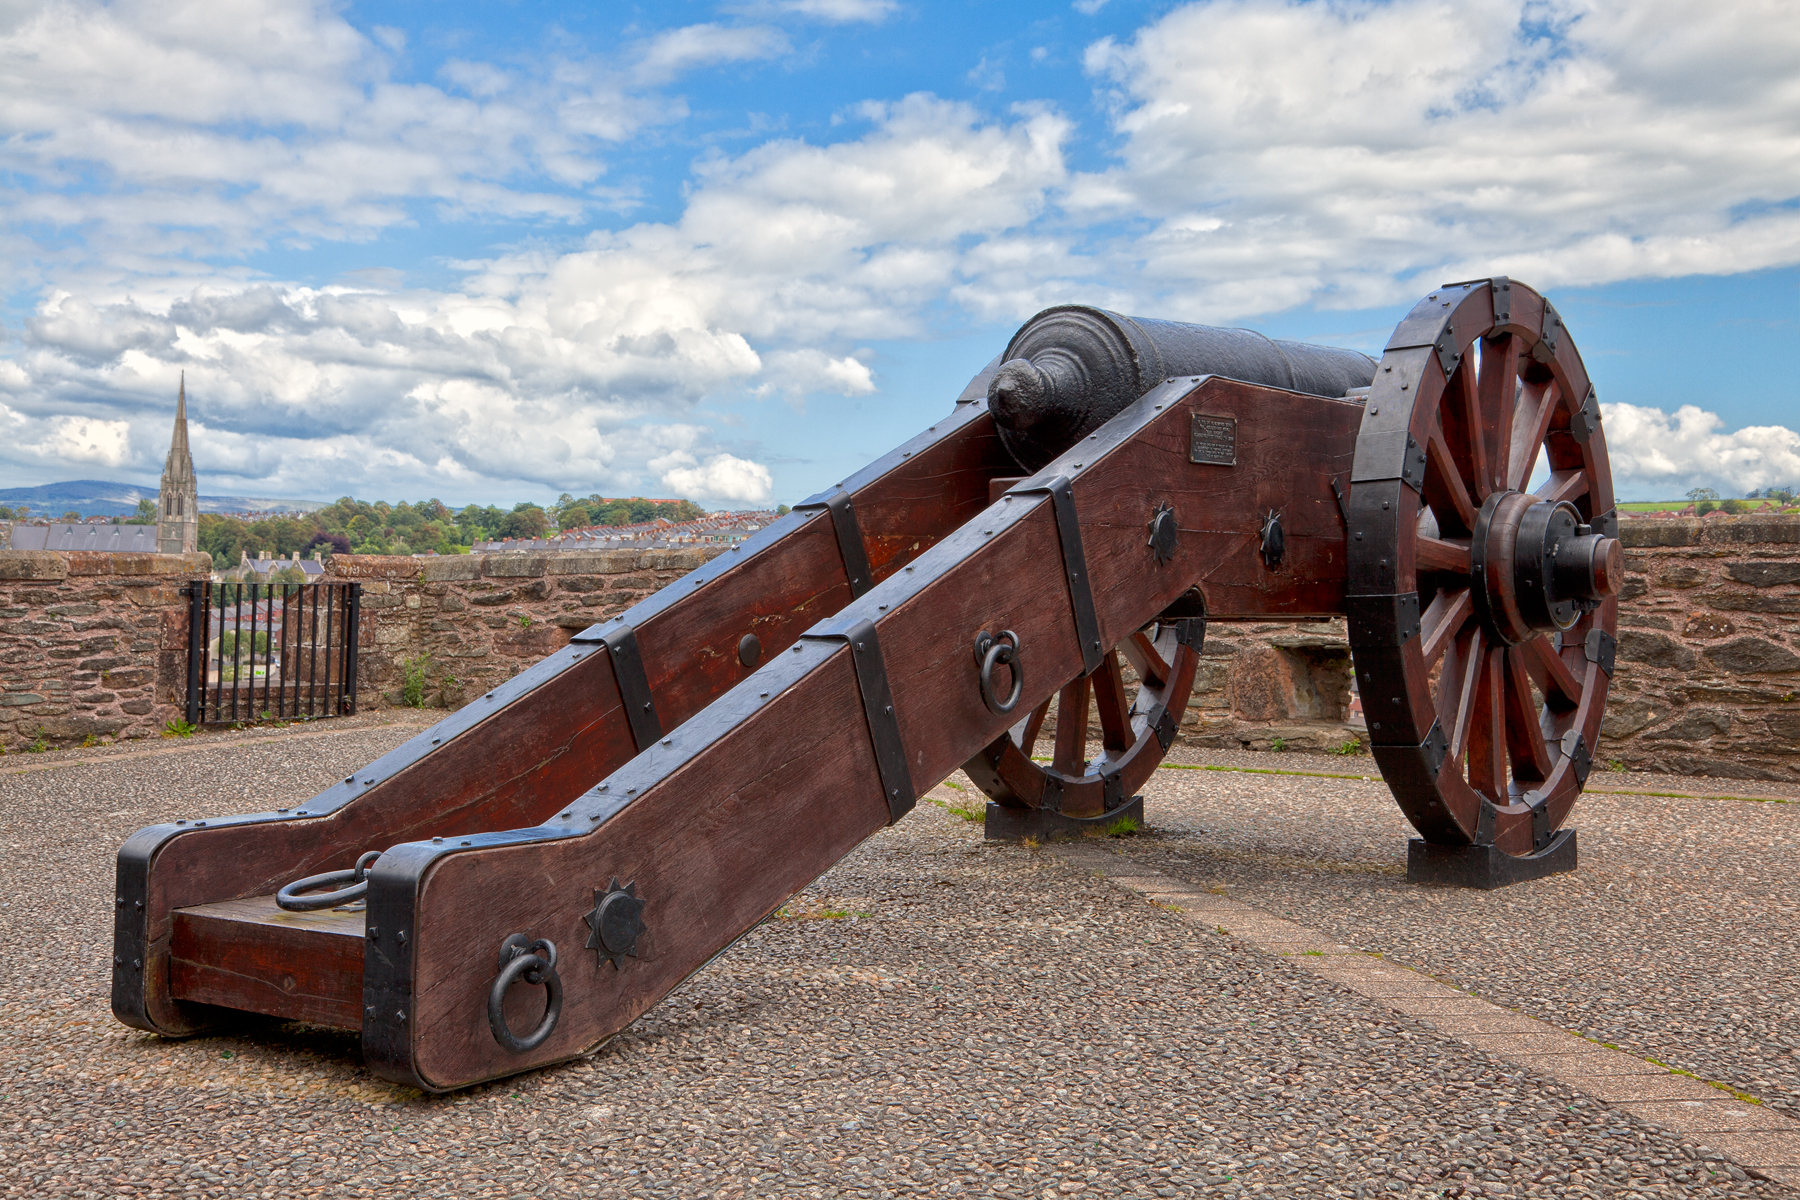 Derry cannon - hdr photo